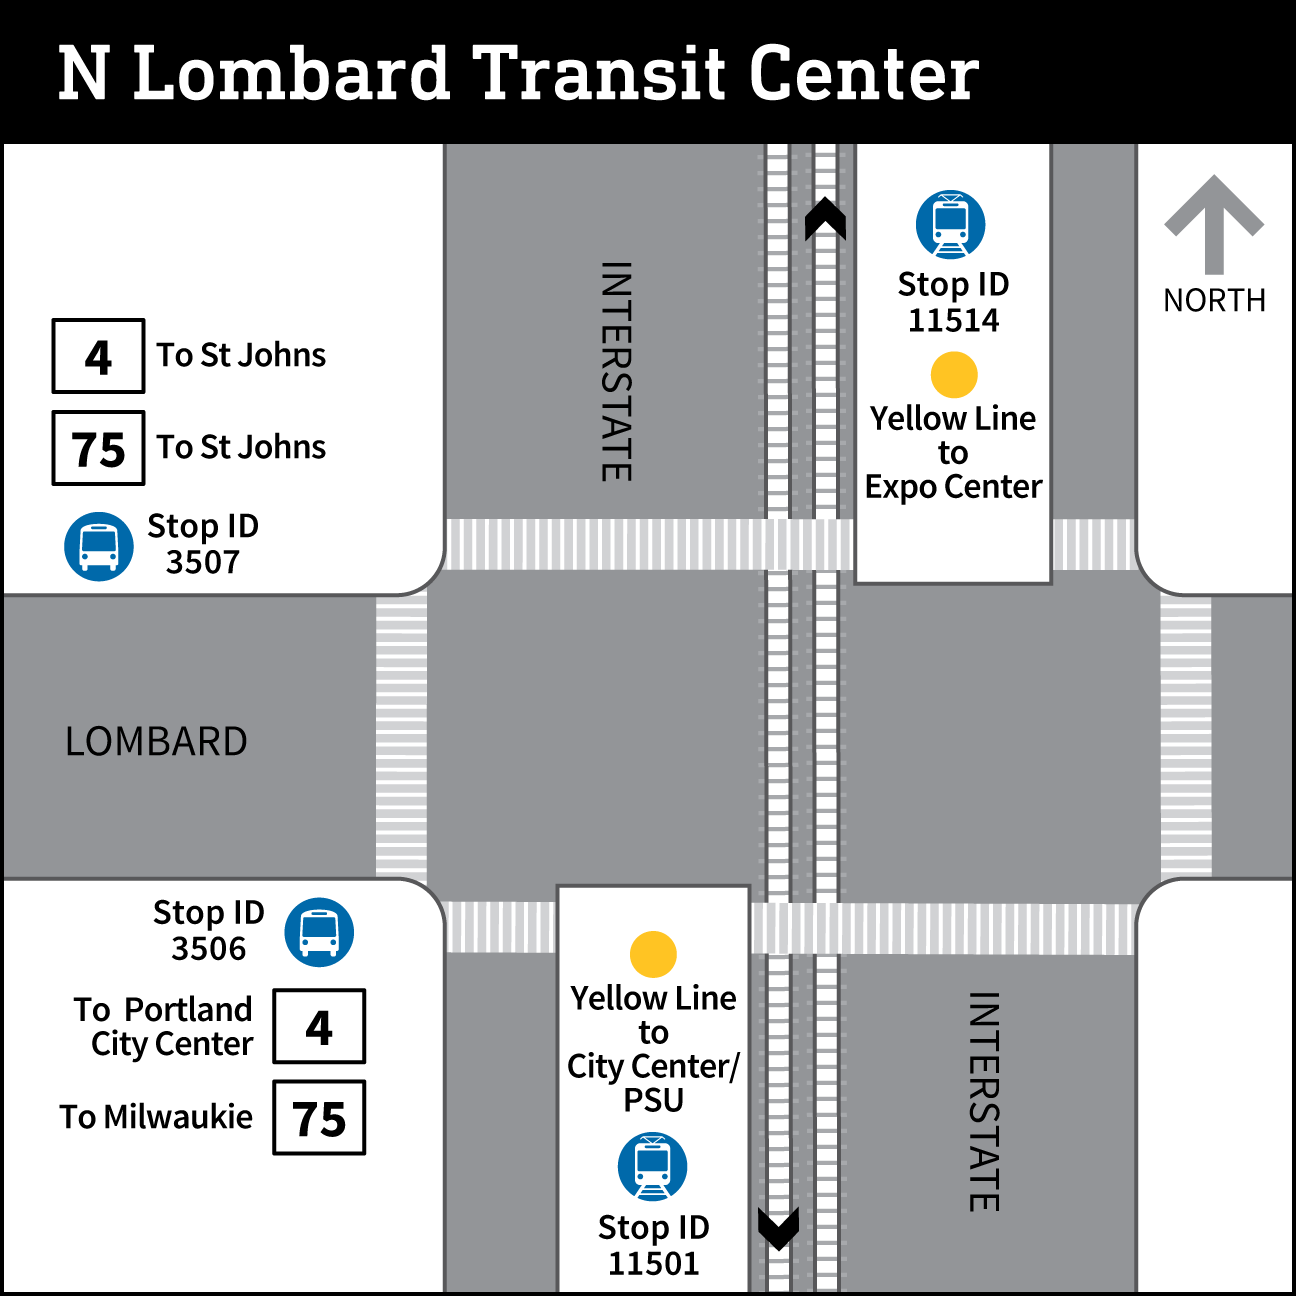 N Lombard Transit Center